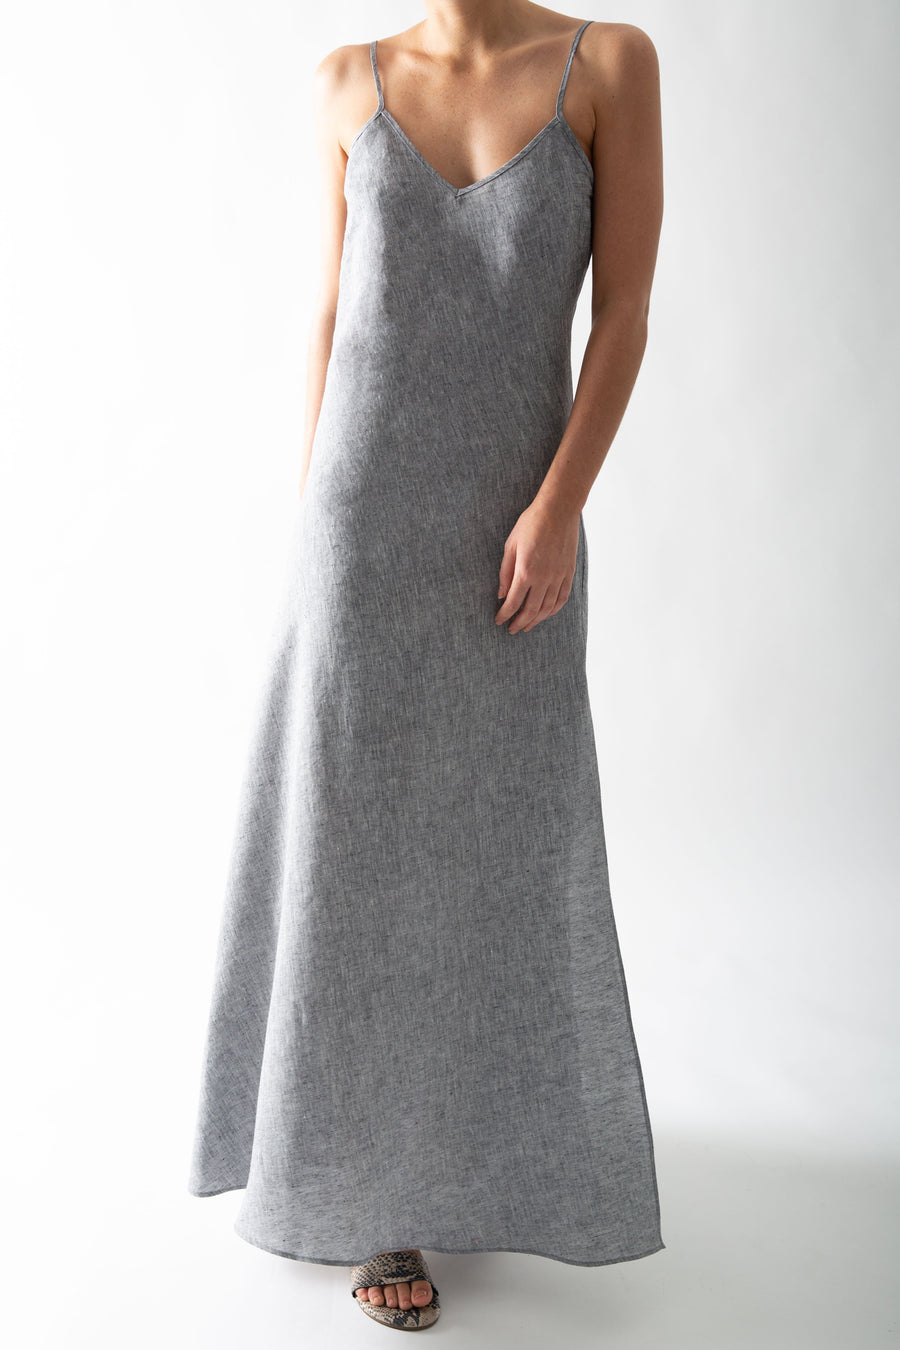 This is a photo of a woman from the neck down, she is wearing a gray chambray slip dress.